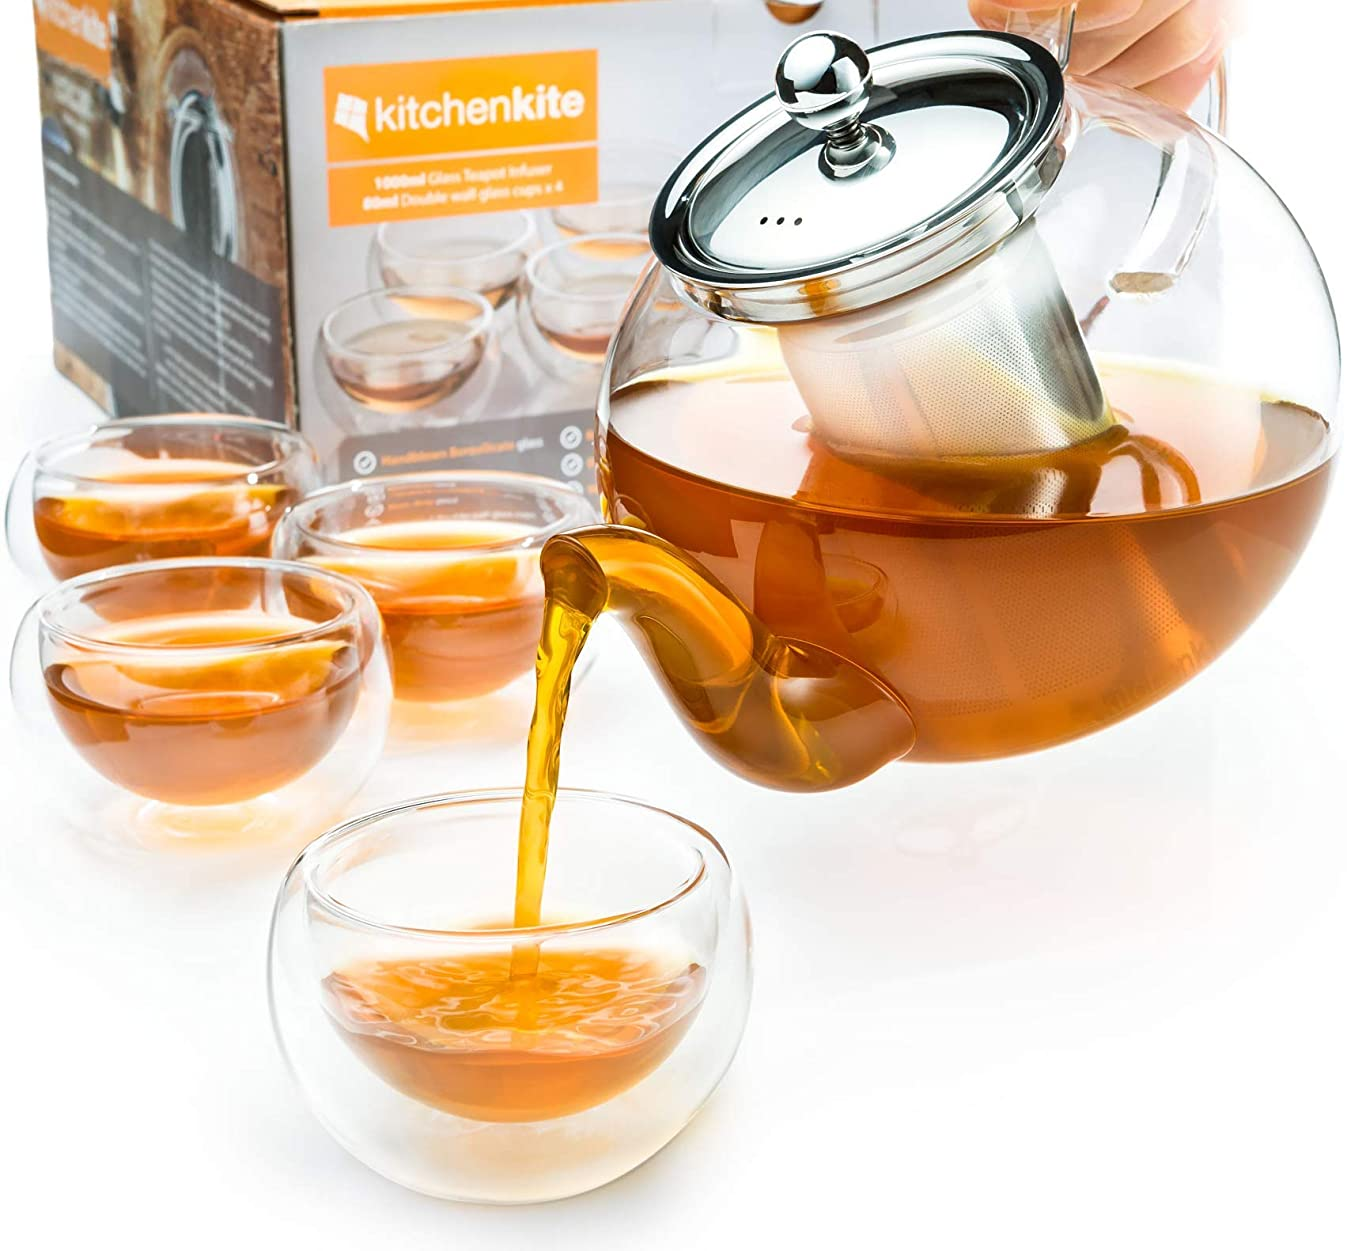 Stovetop Safe Tea Kettle, Tea Strainer, Glass Teapot with Infuser Set, Extra 4 Double Wall 80ml Cups, Removable Stainless Steel Strainer, Microwave, Dishwasher Safe, Blooming & Loose Leaf Tea Pot